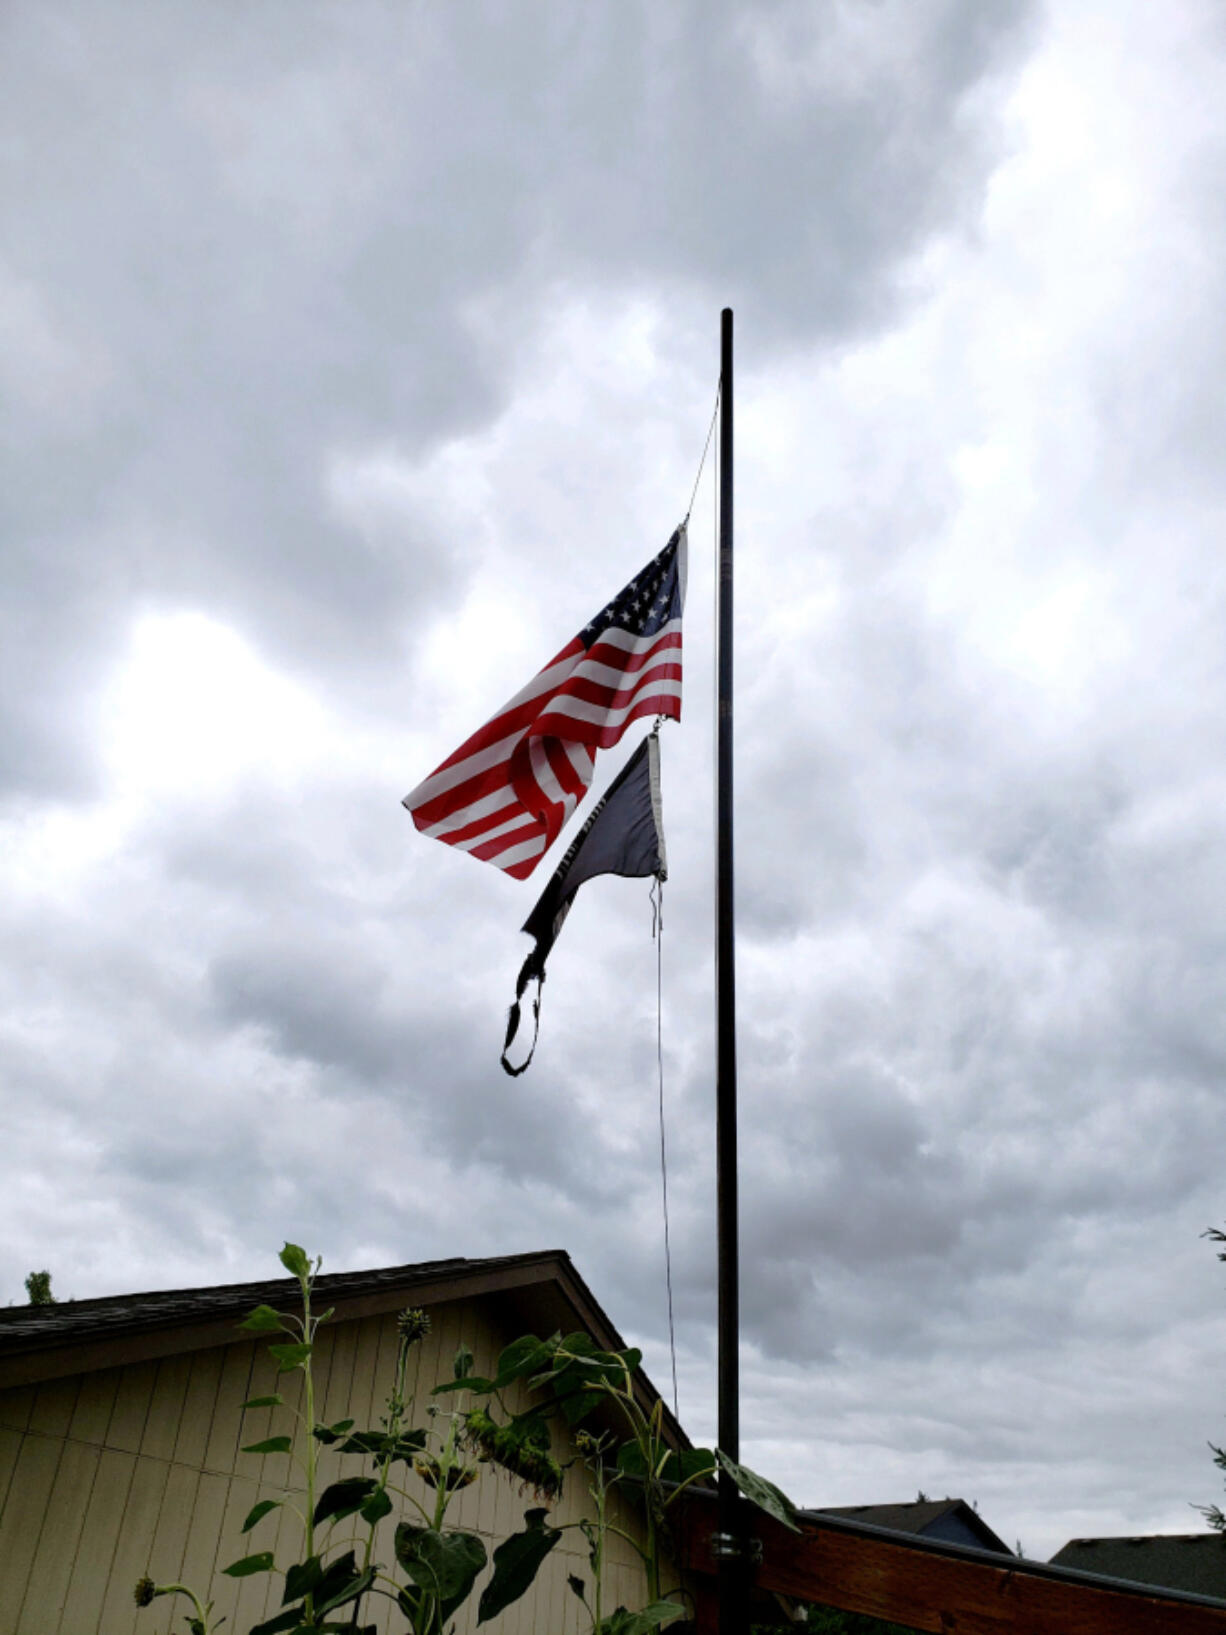 The U.S. flag is displayed at half staff on a home's flagpole recently following the Aug. 24 death of longtime Scouting volunteer Greg Hamilton at the age of 65.